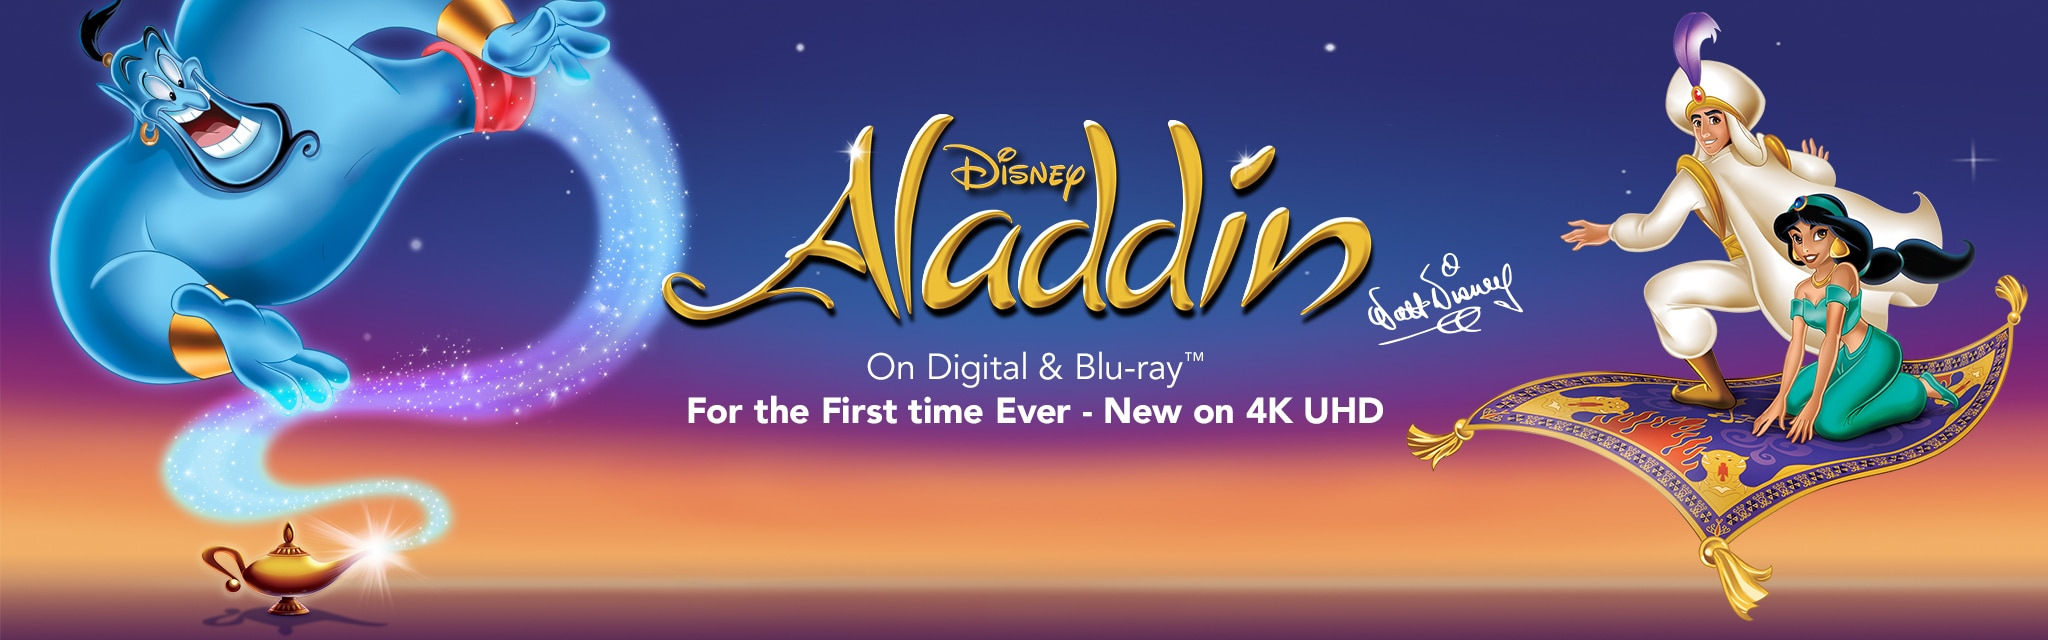 Disney Aladdin now on Digital and Blu-ray. For the First time Ever - New on 4K UHD.